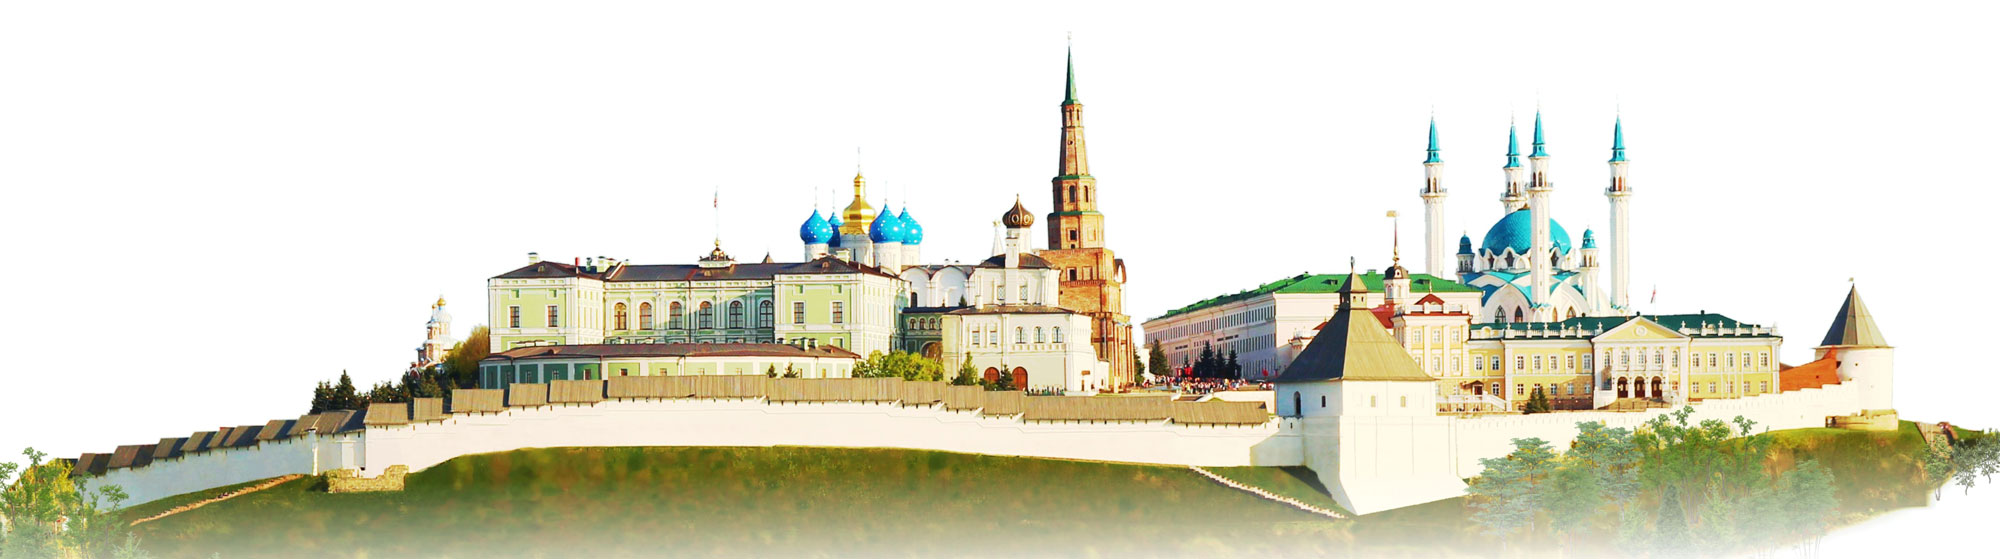 Views Kazan Kremlin